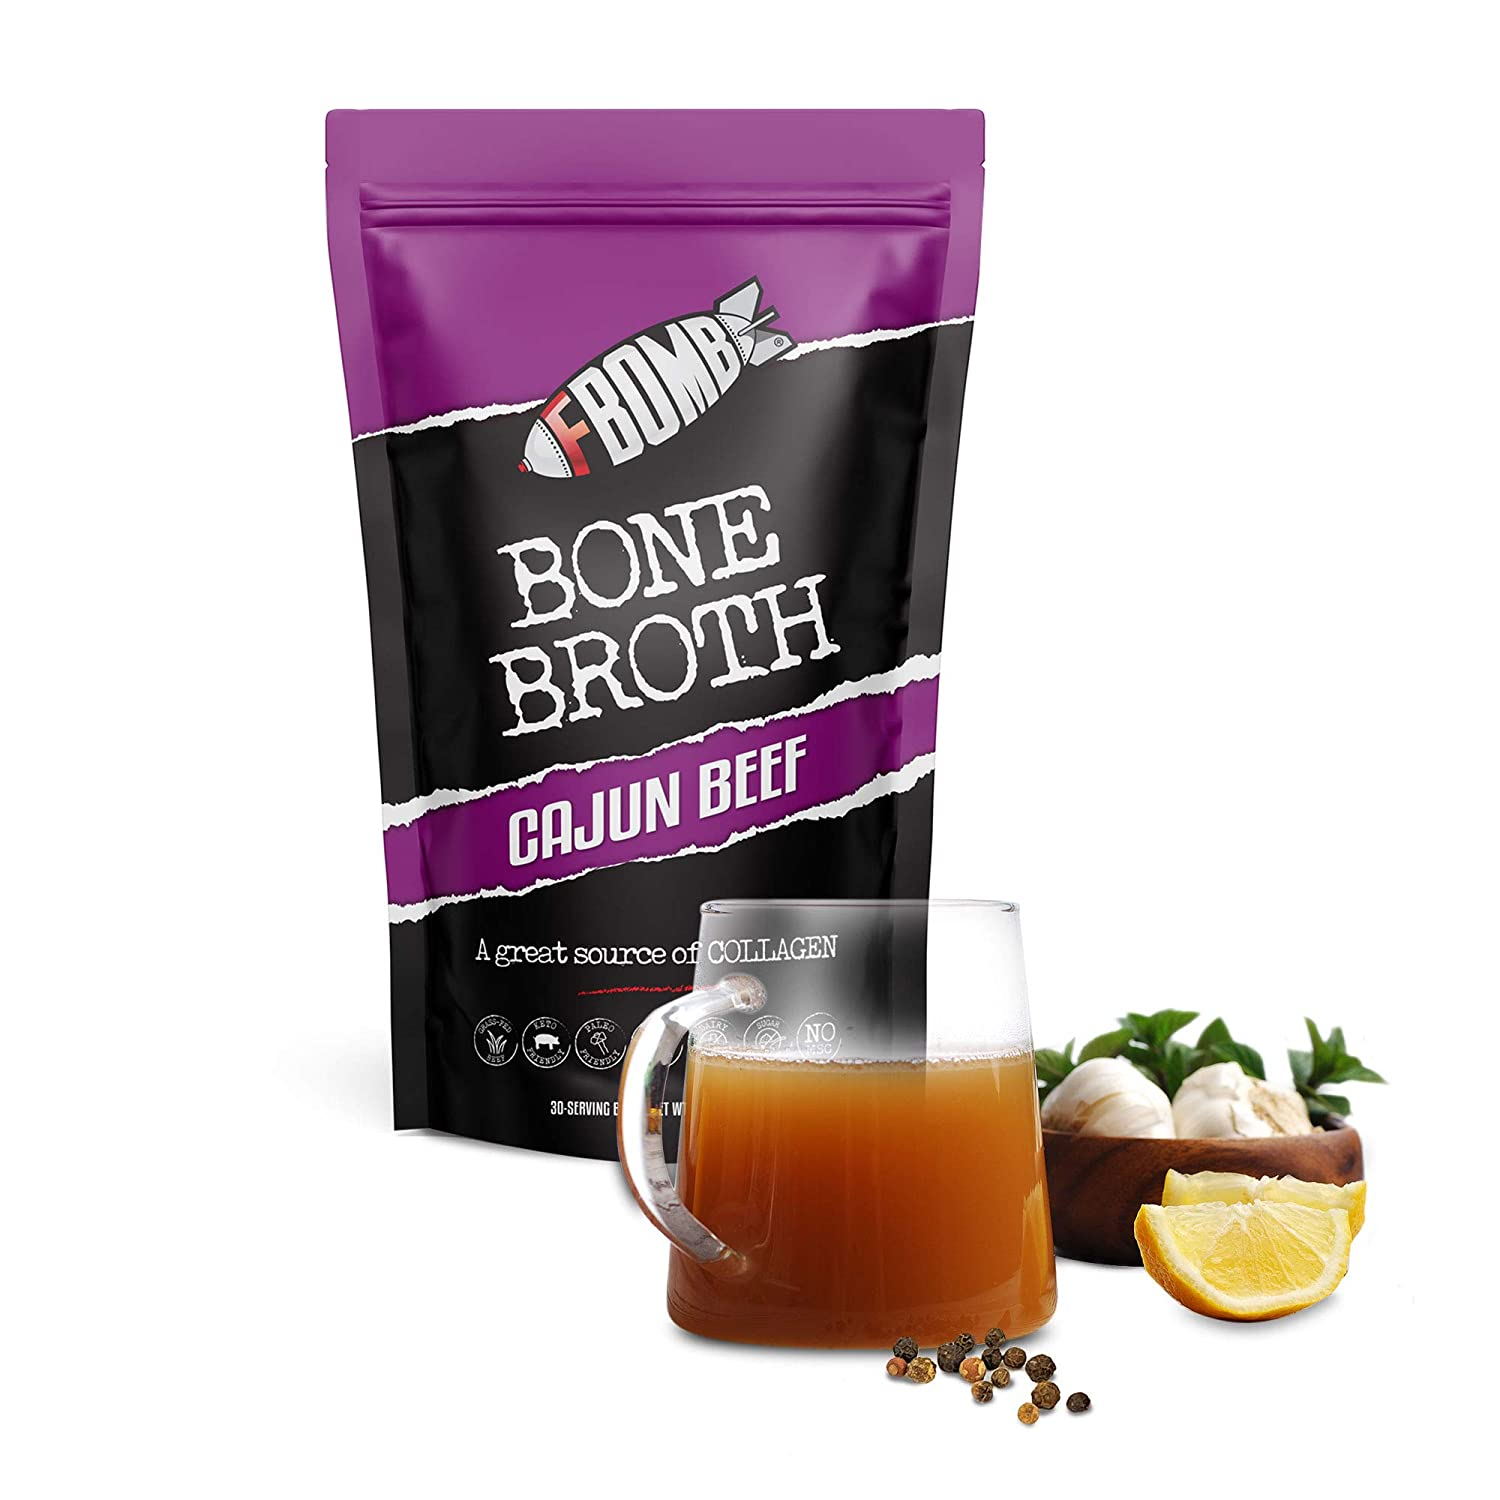 FBOMB Beef Bone Broth Protein Powder - 30 Servings: Keto & Paleo Friendly Soup, Fortified with Electrolytes & Collagen | Grass-Fed, Pasture Raised Beef | Dairy-Free, Gluten Free, Non-GMO | Cajun